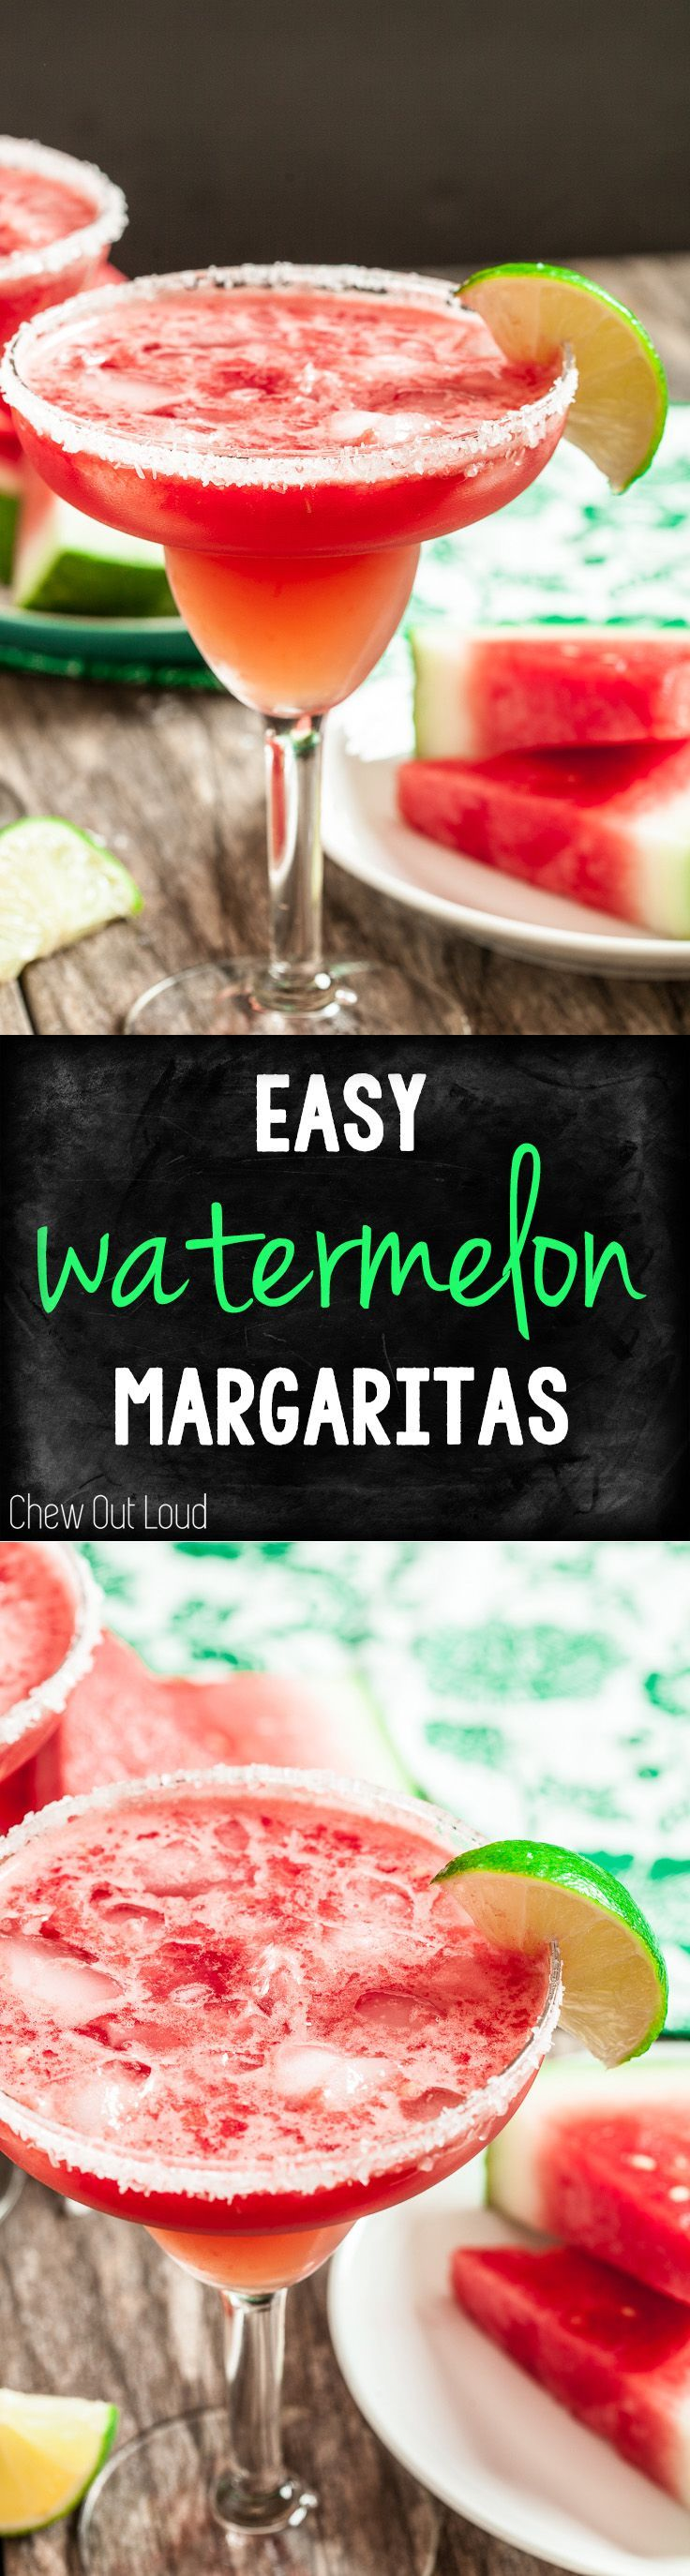 Watermelon Margaritas are simply awesome! Easy, refreshing, and an instant hit. #drinks #cocktails #summer